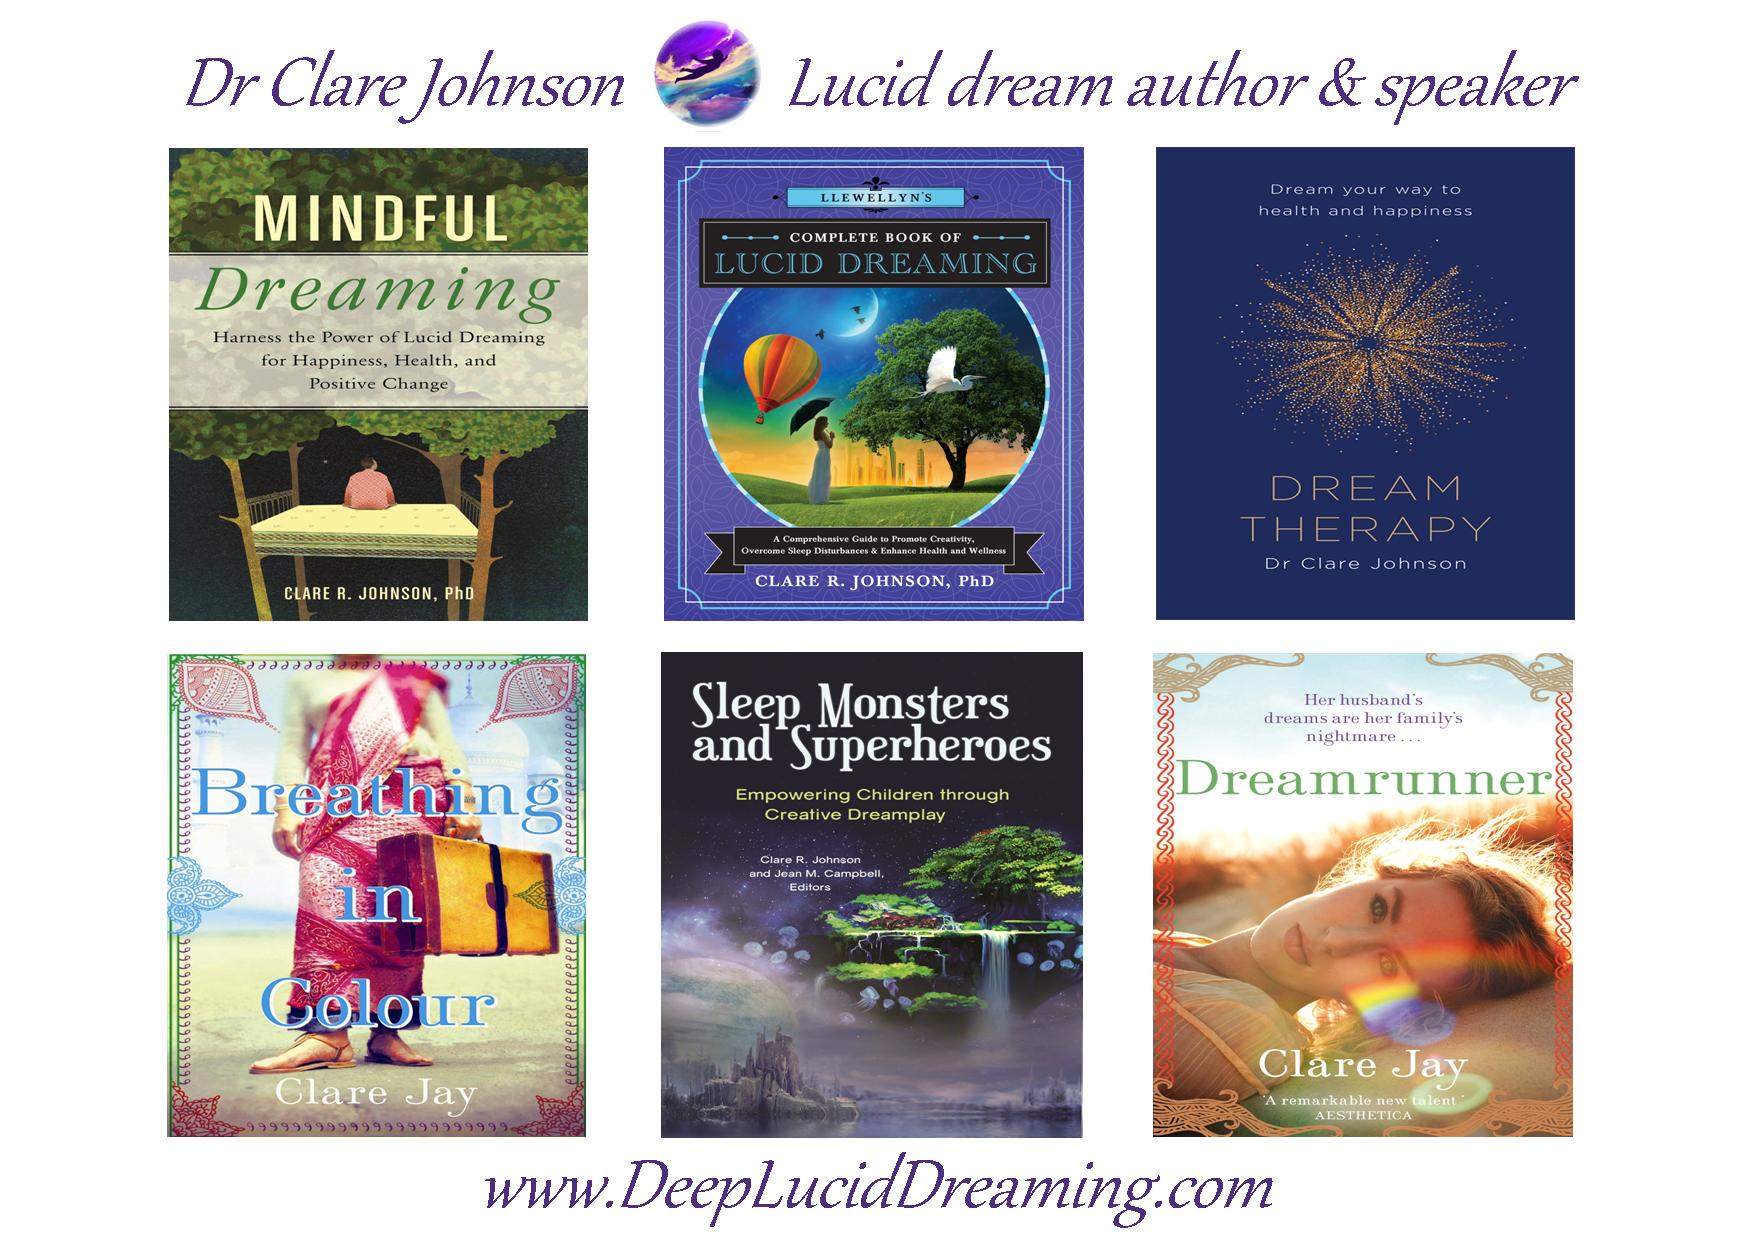 Dr Clare Johnson Books deepluciddreaming.com